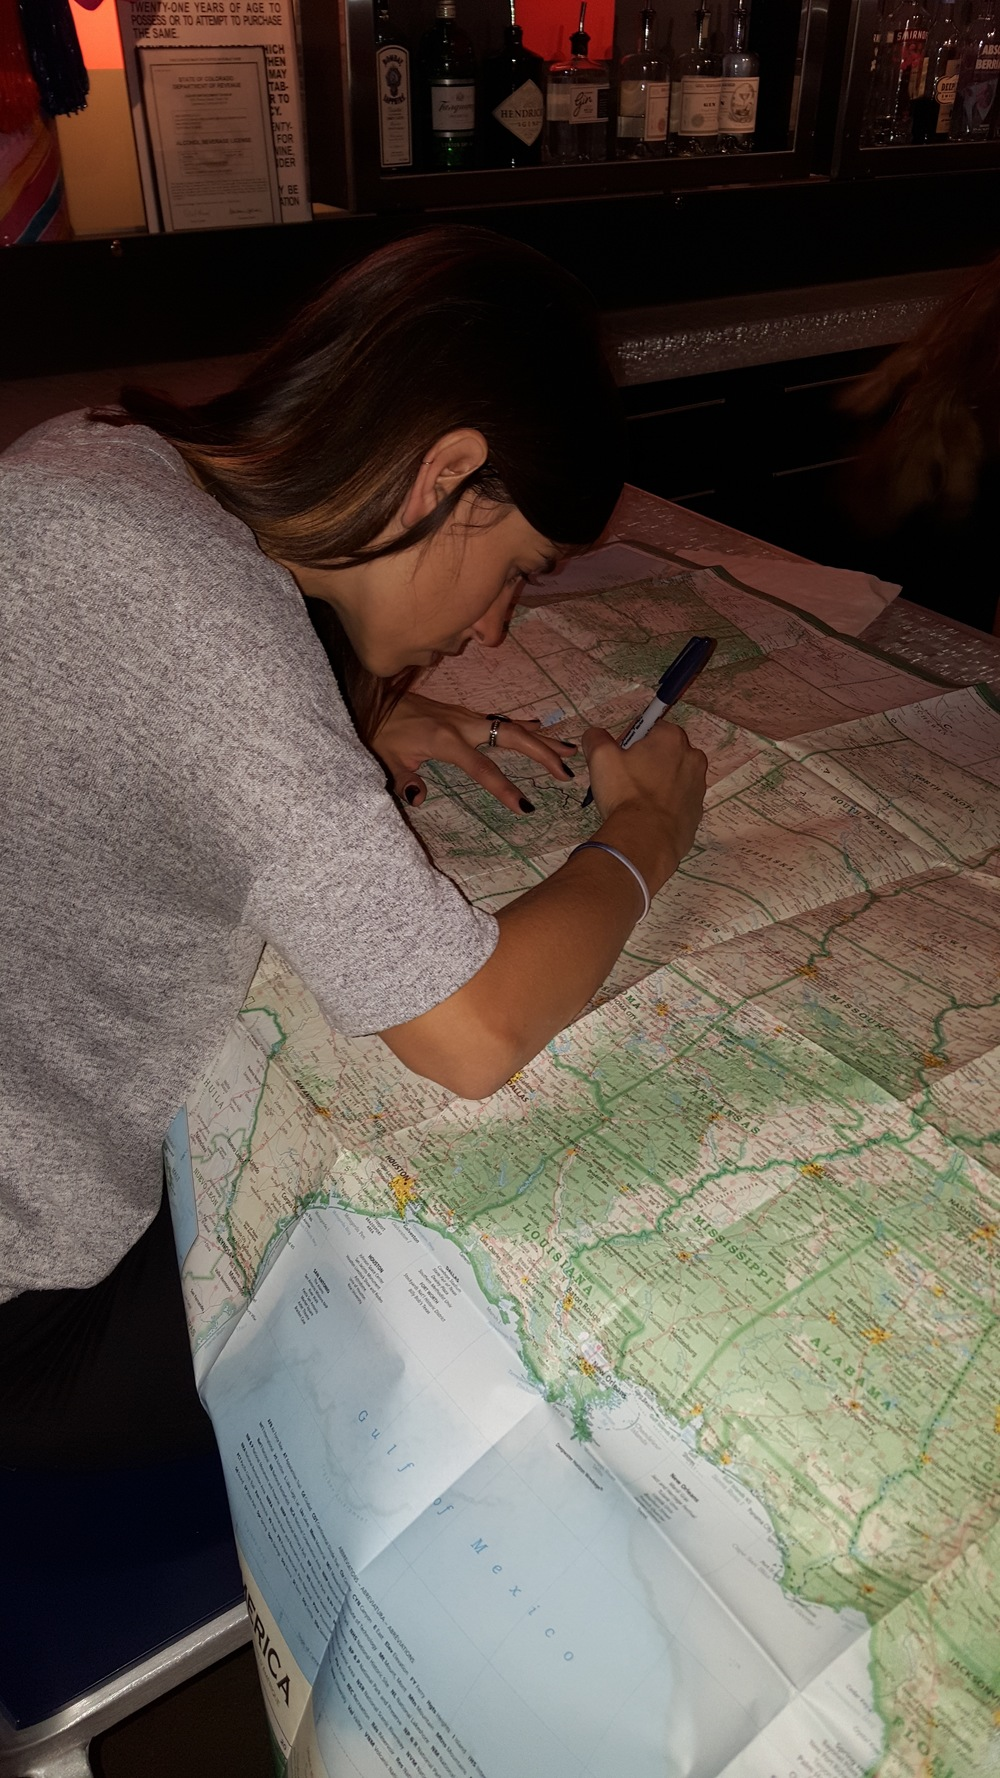 Plotting out the roadtrip course.